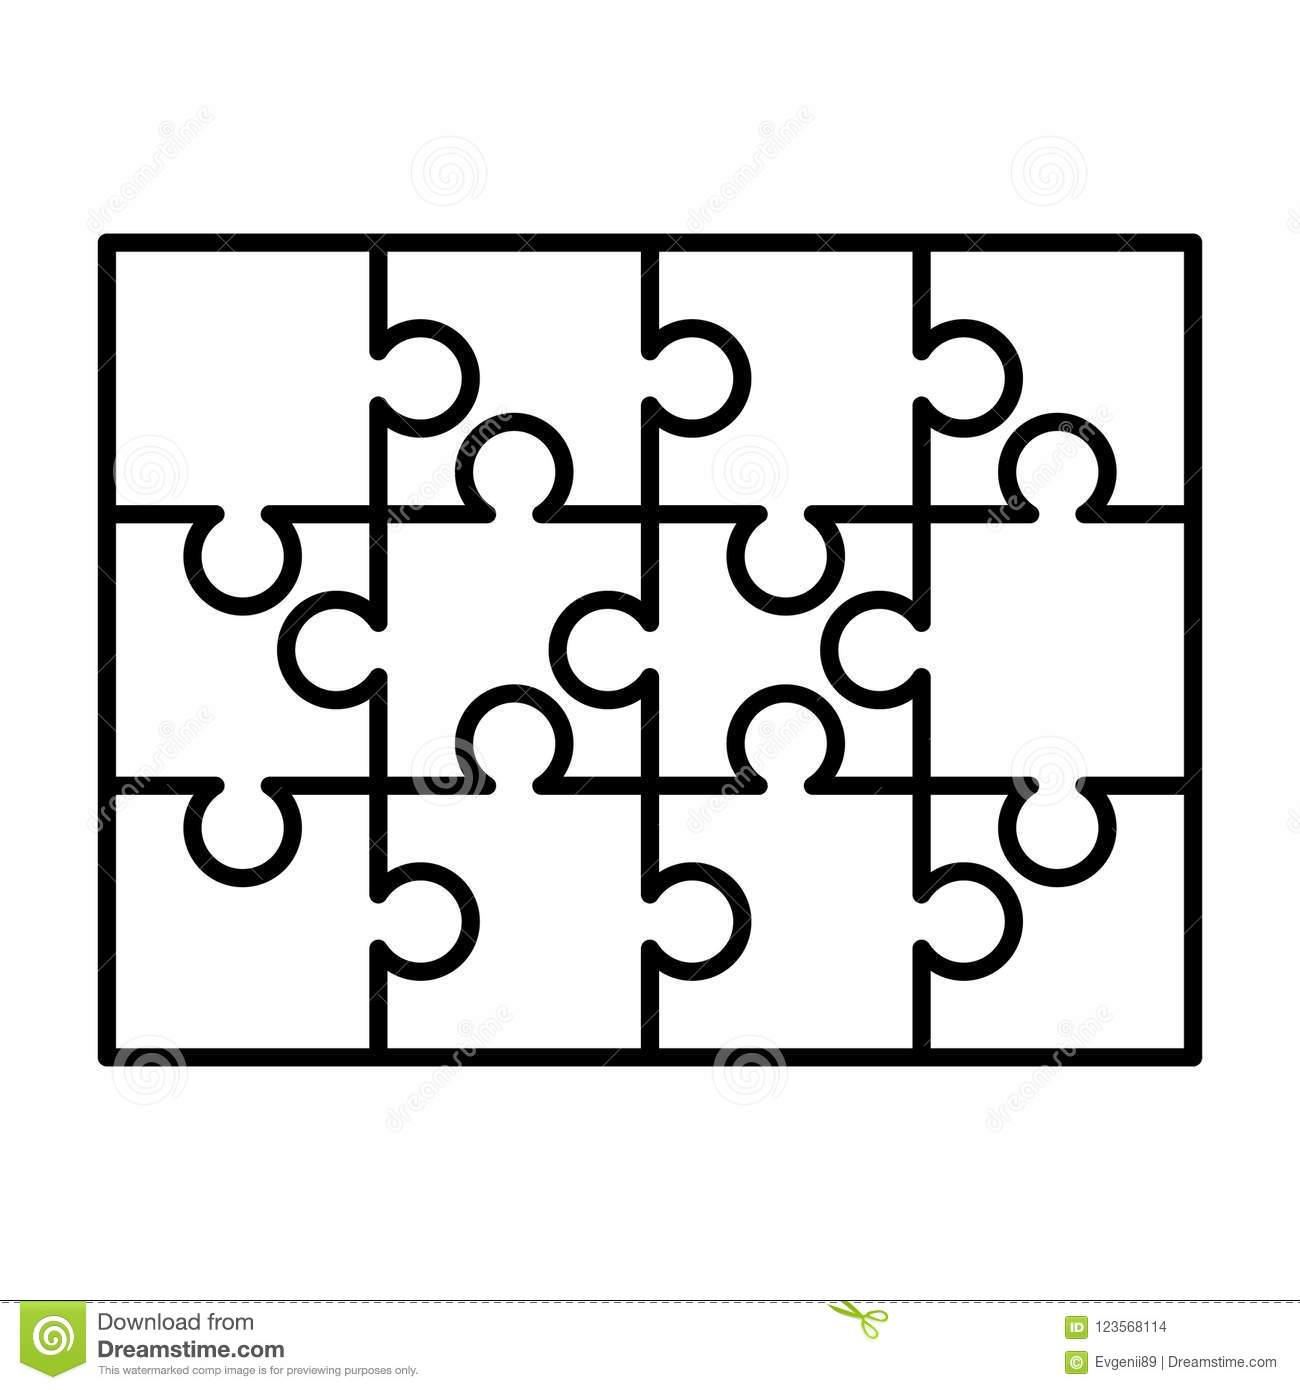 image relating to Printable Puzzle Template called 12 White Puzzles Areas Organized Inside A Rectangle Form